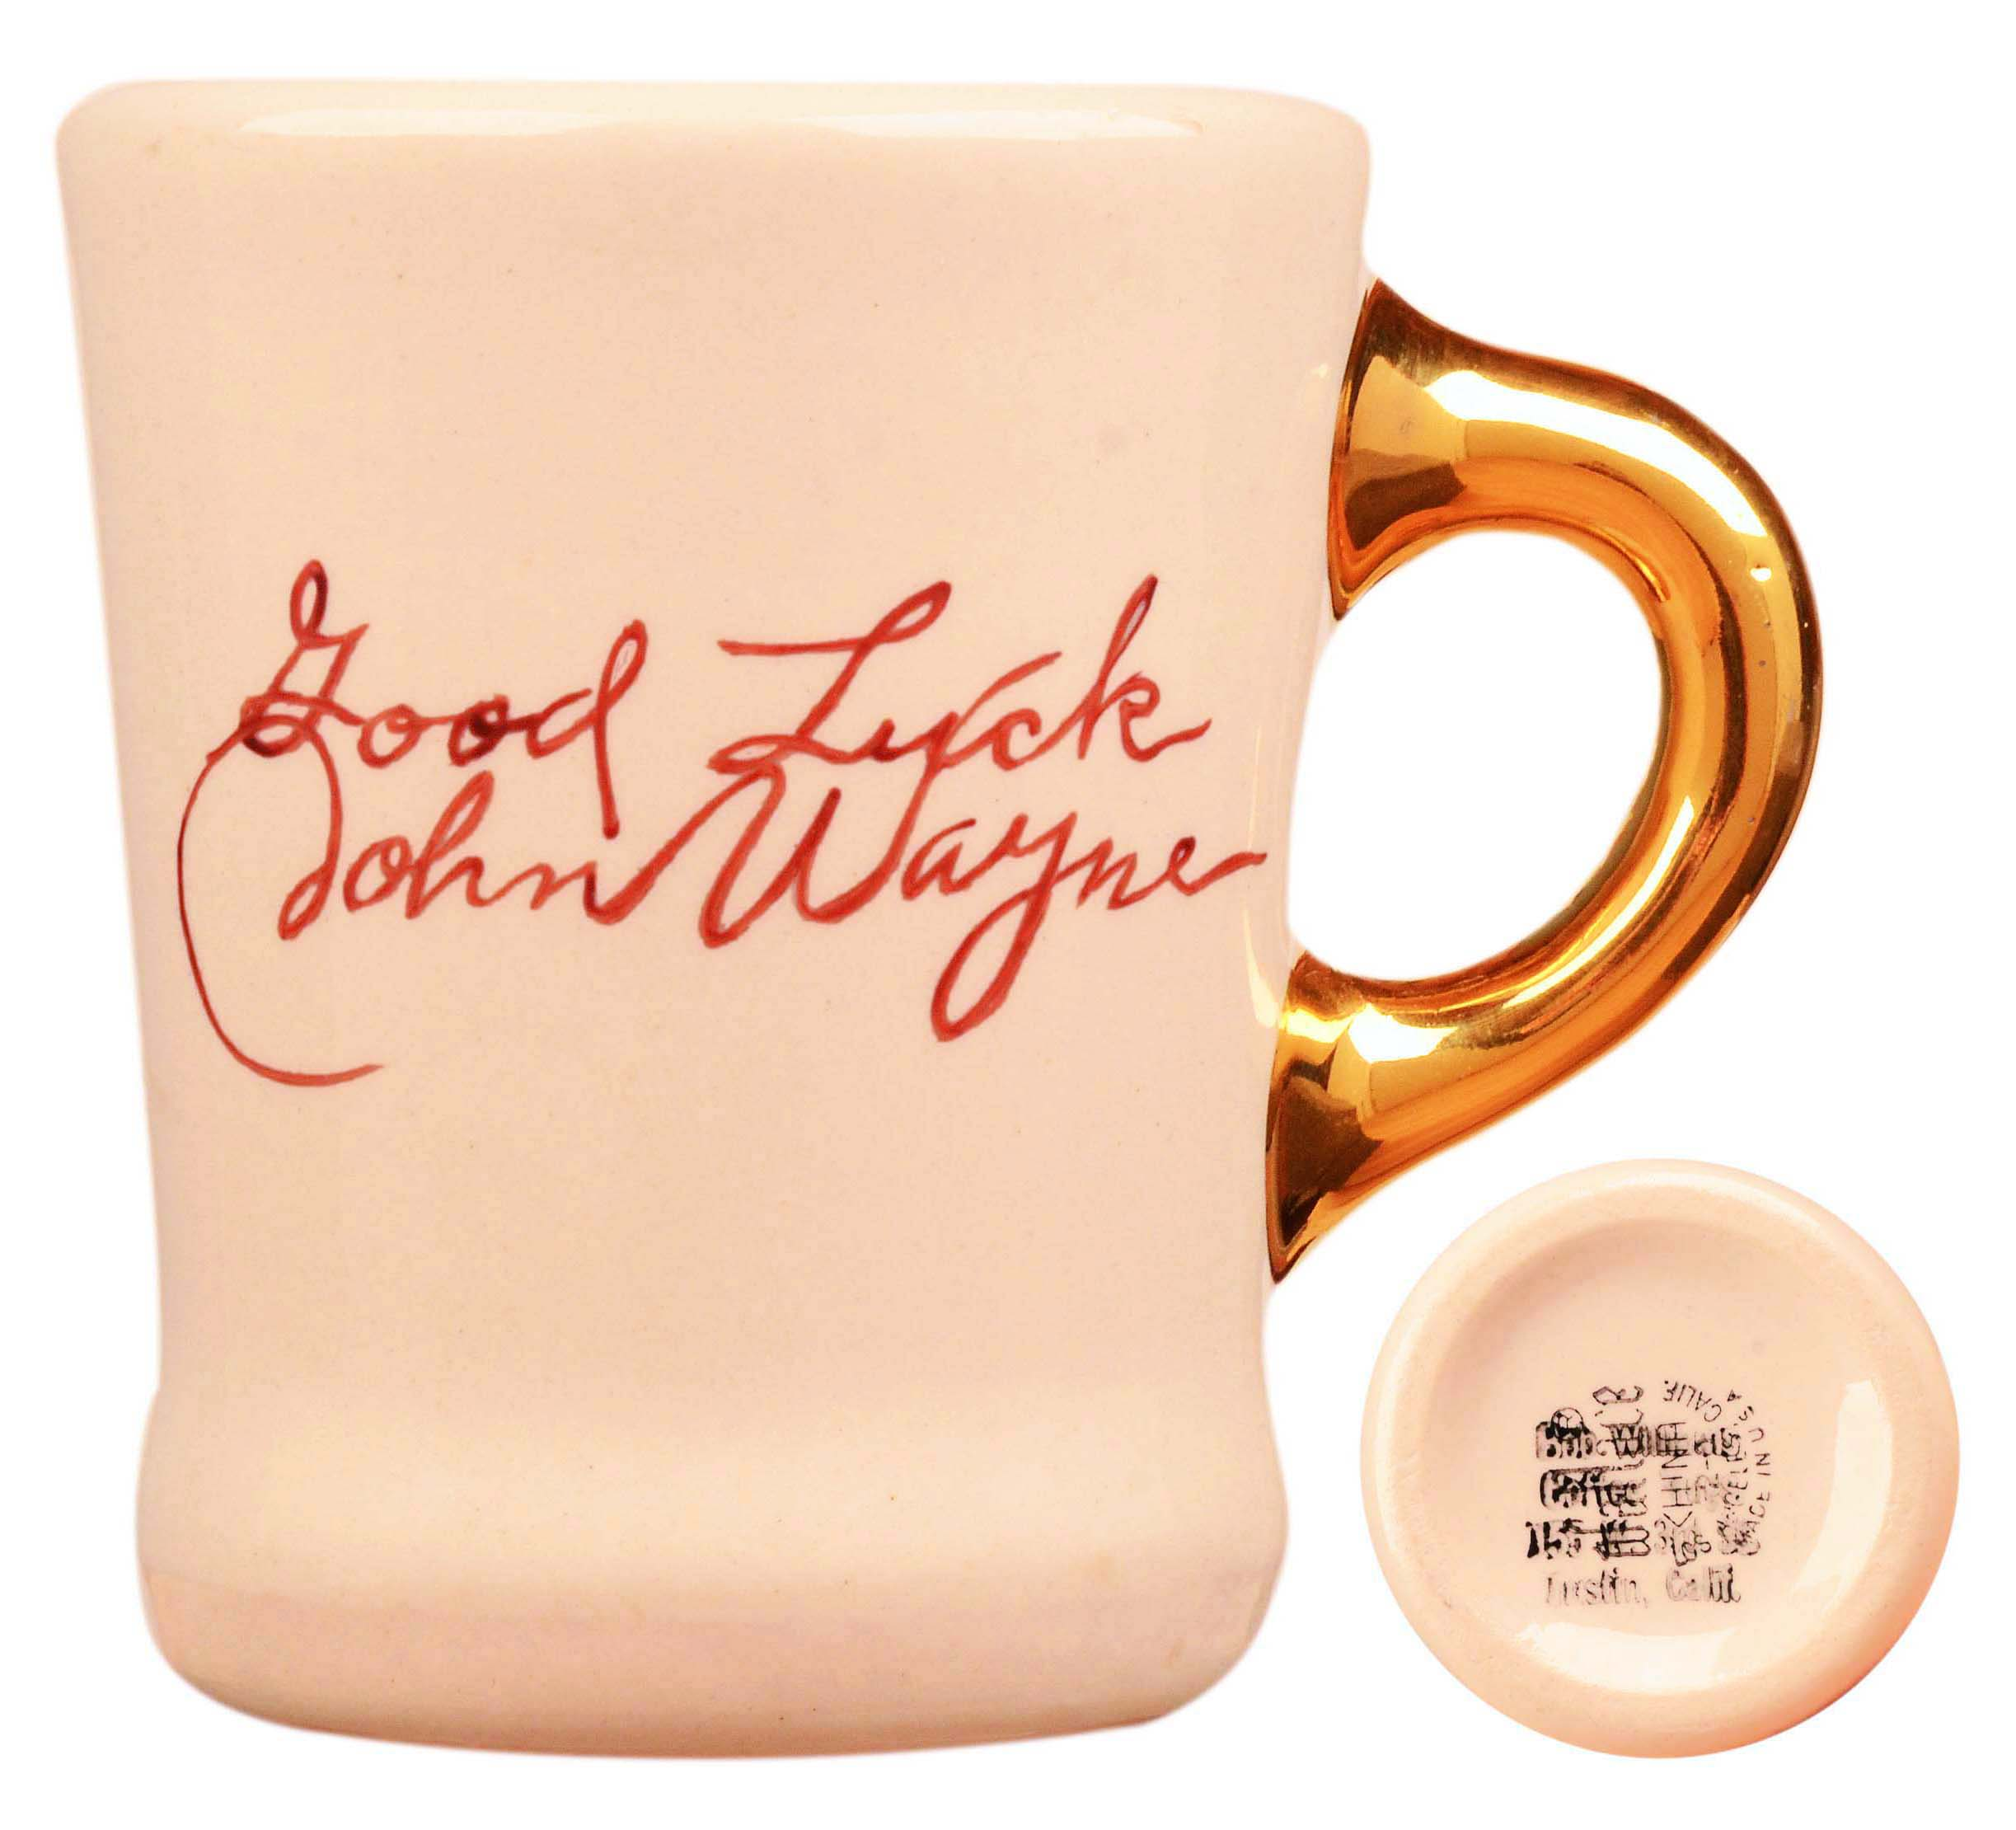 John Wayne mug for the 1959 movie Rio Bravo, back.